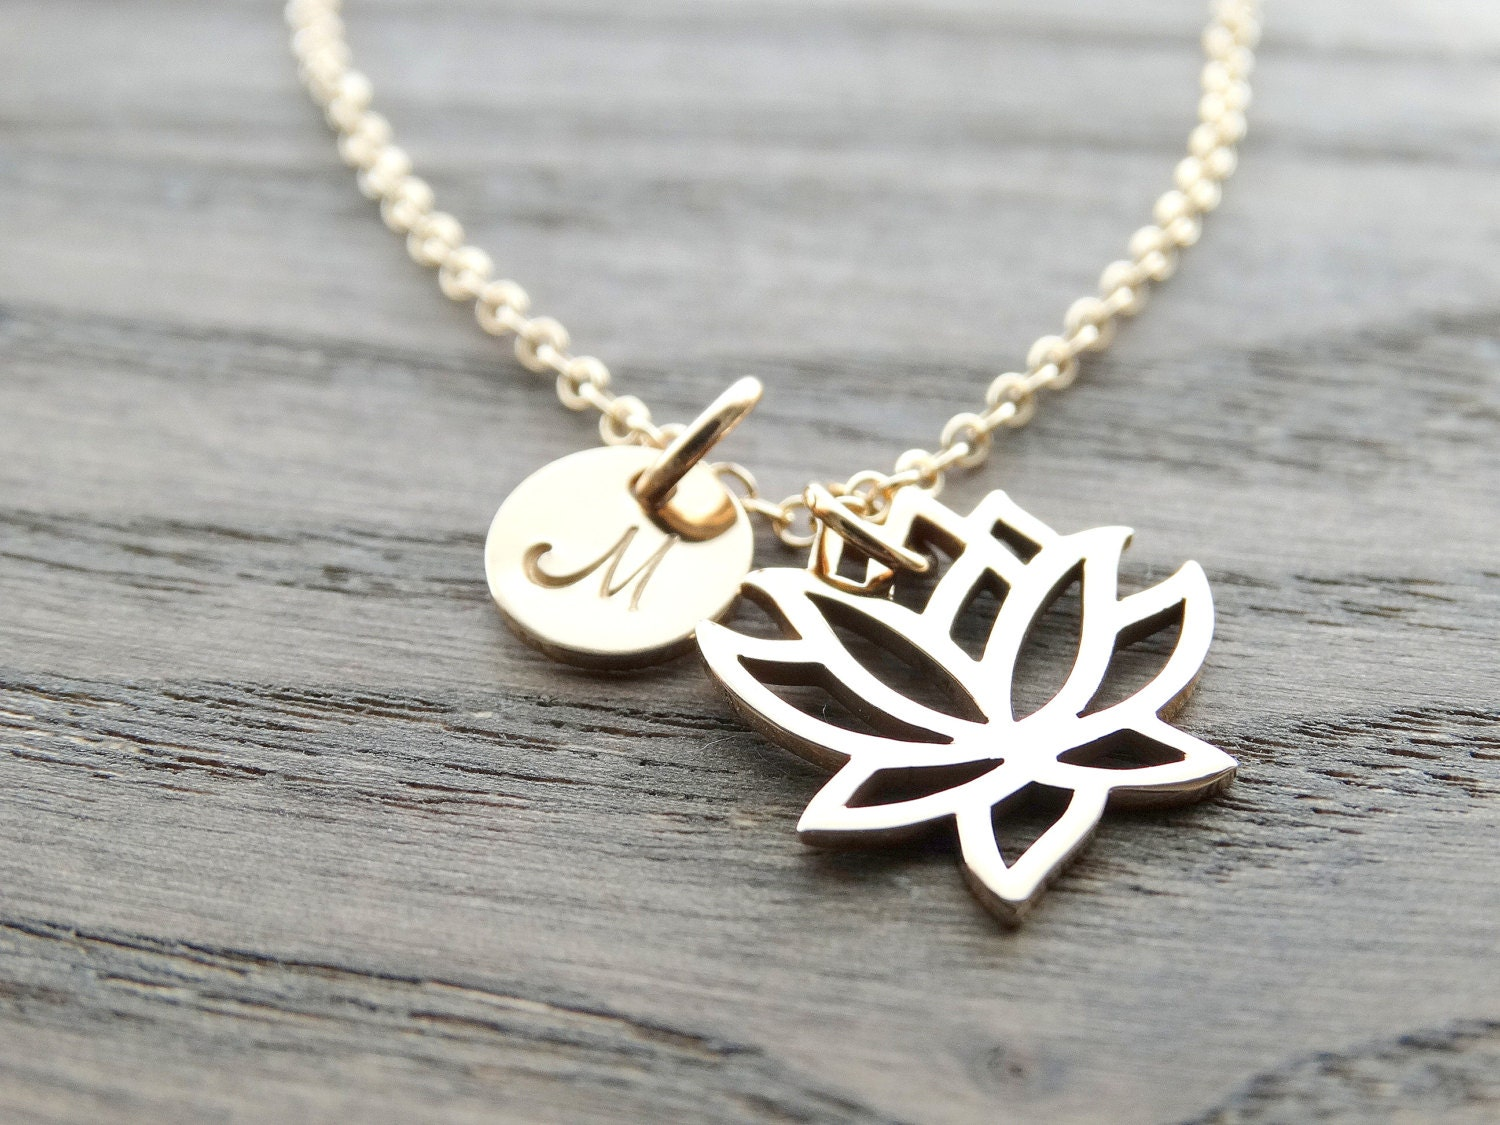 Lotus Necklace Gold Lotus Flower Necklace Lotus Charm Yoga Jewelry